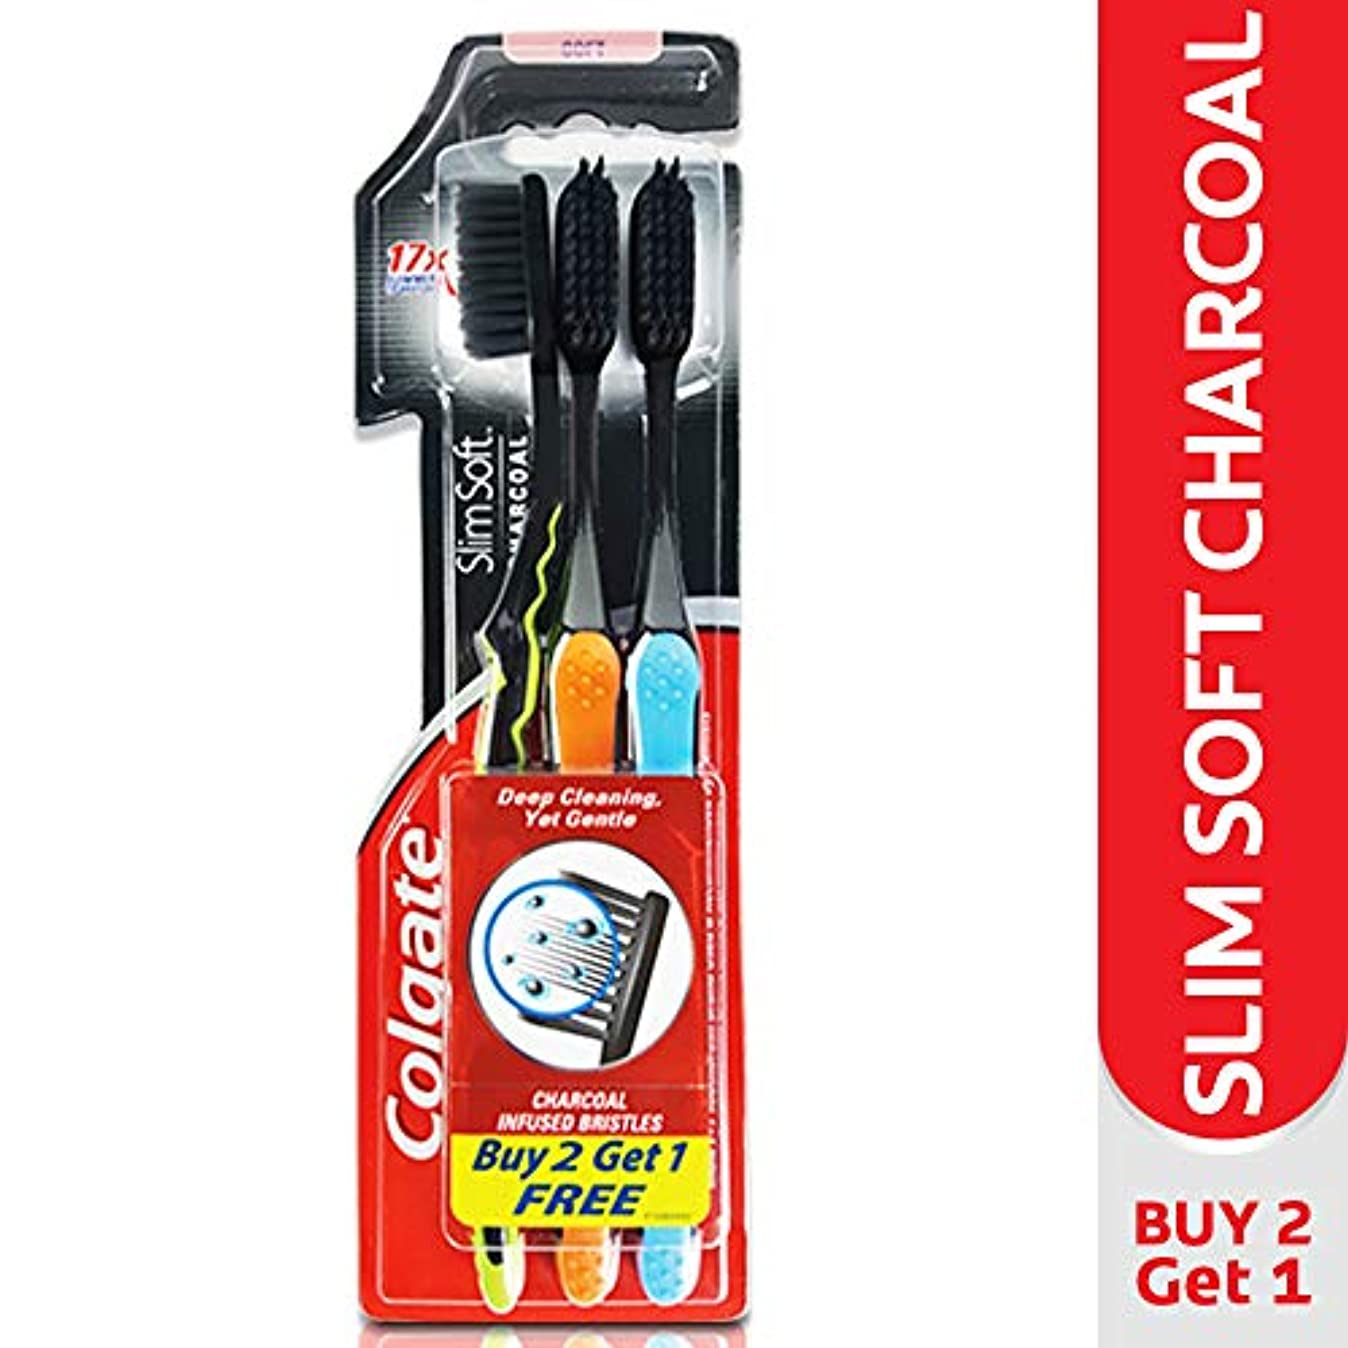 ボタンおんどりかなりColgate Slim Soft Charcoal Toothbrush (Pack of 3) 17x Slimmer Soft Tip Bristles (Ship From India)